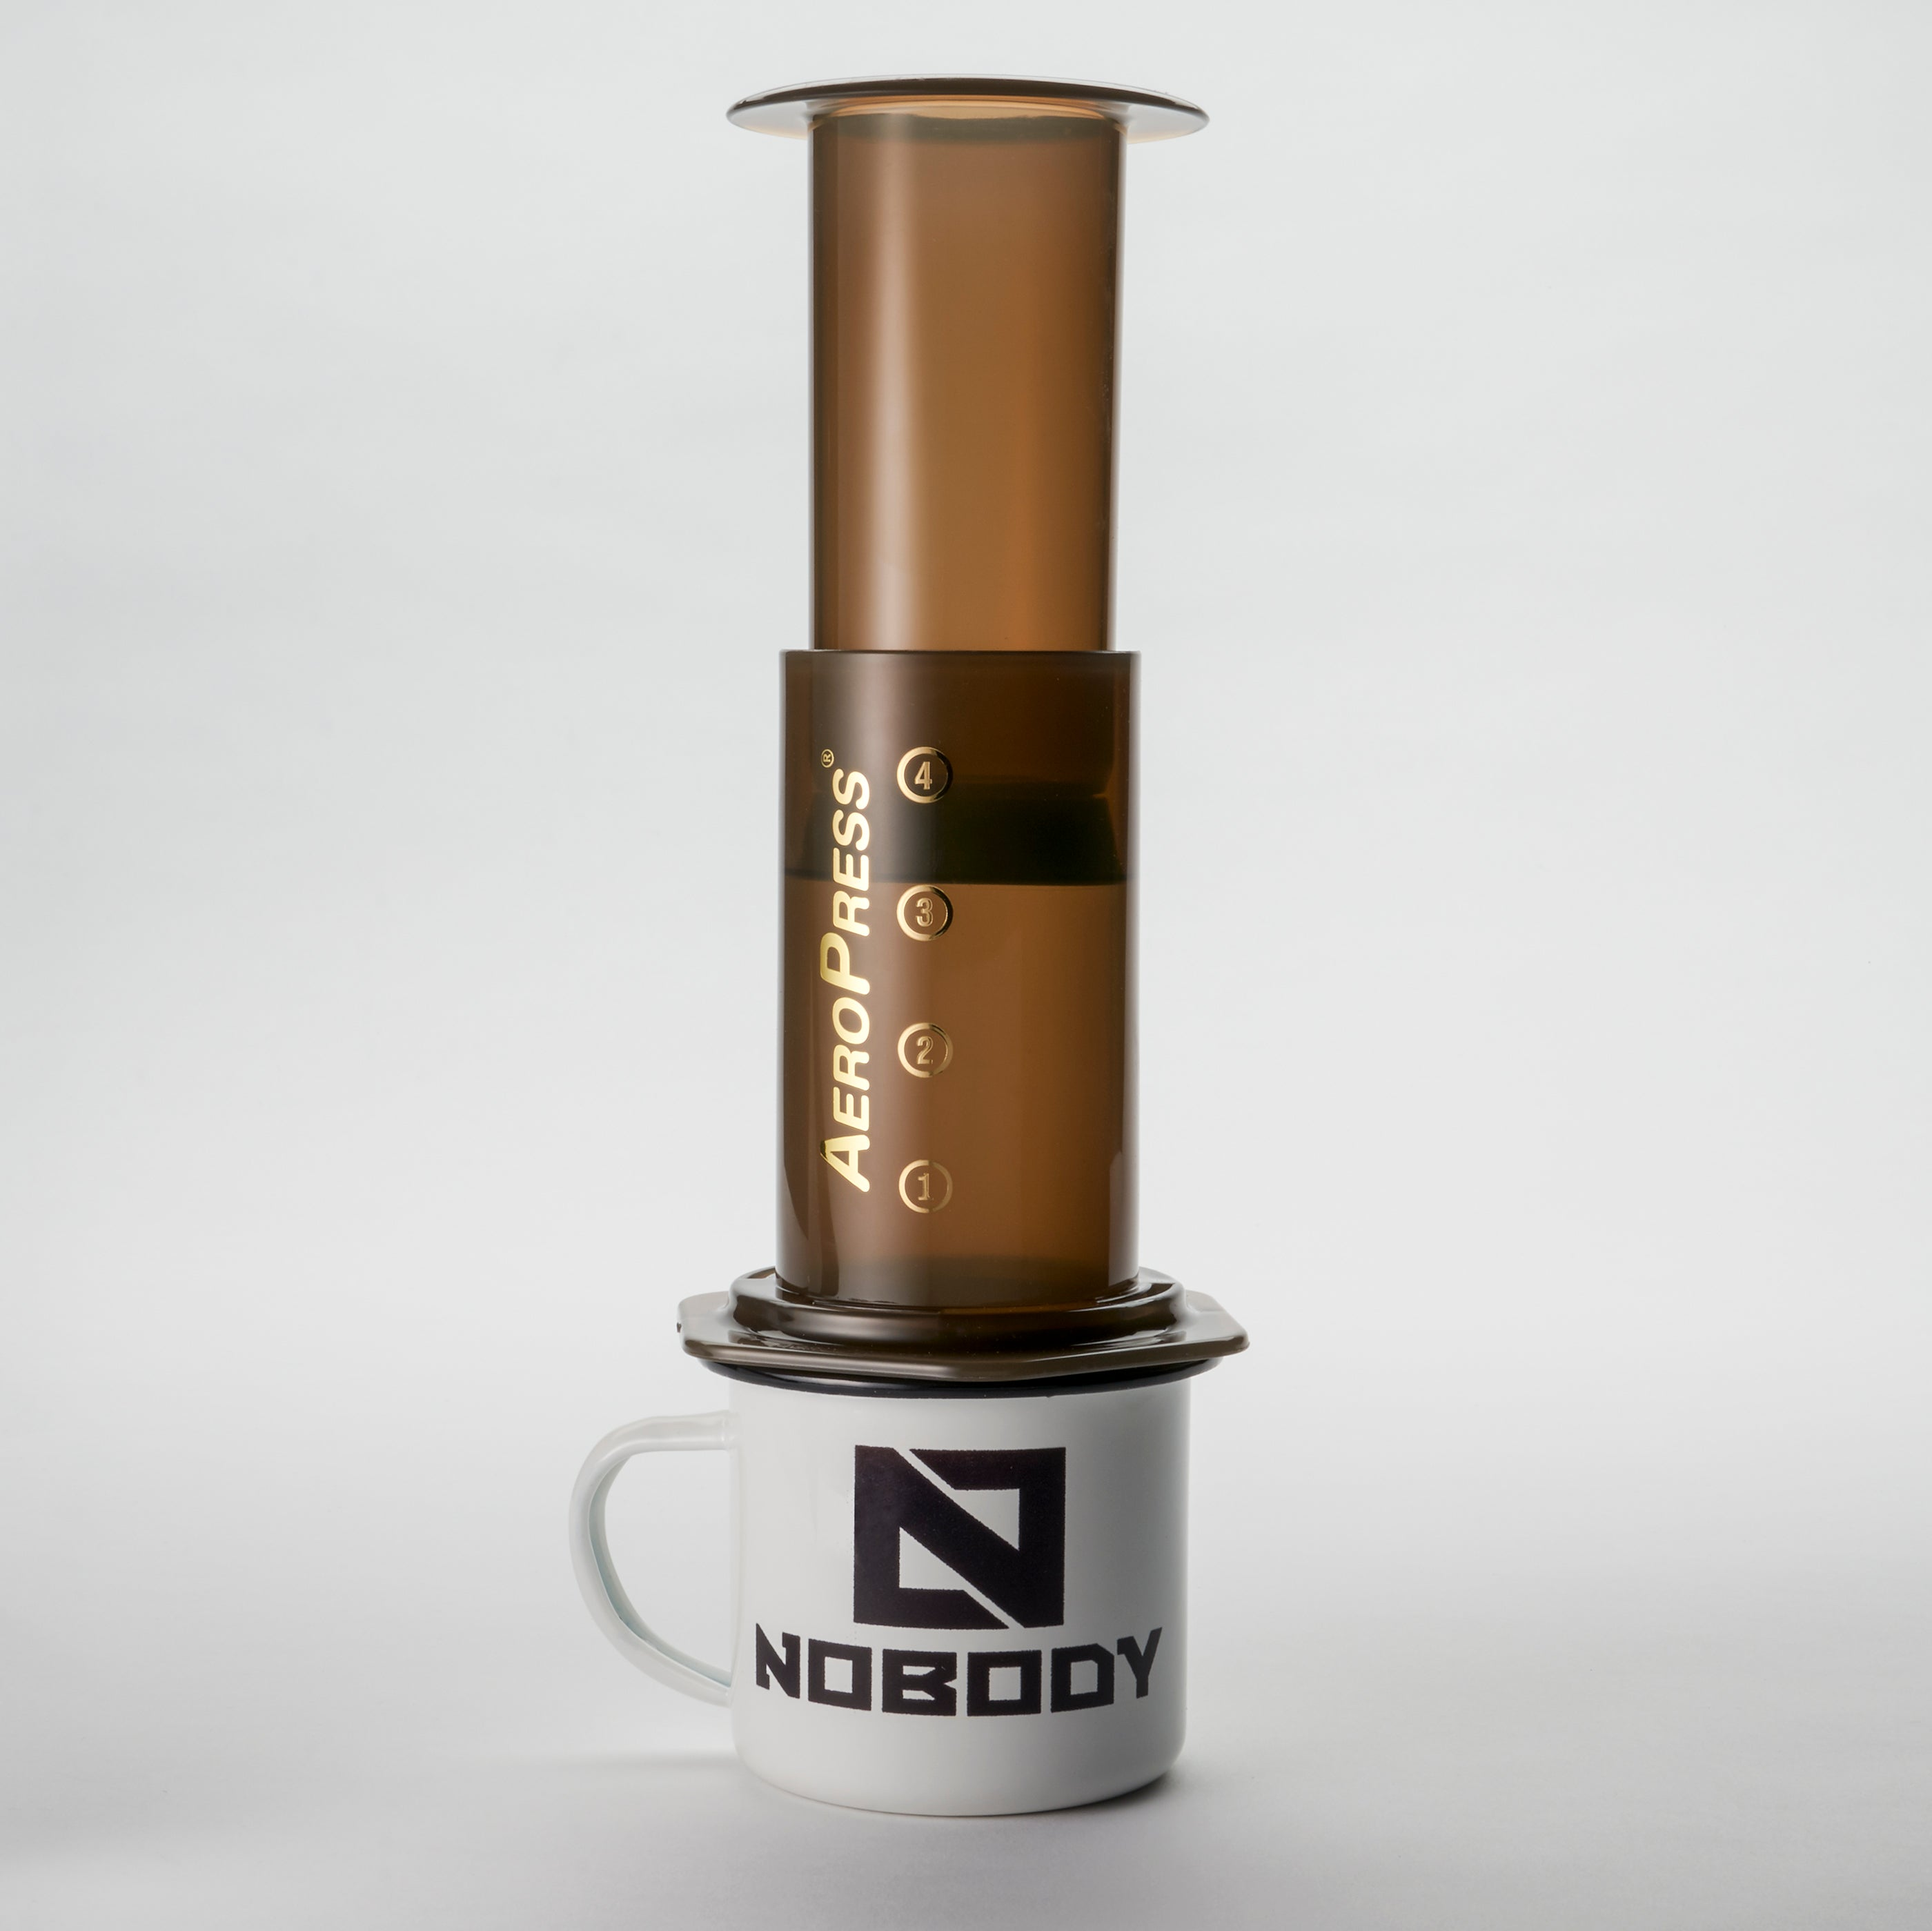 An aeropress coffee machine on a Nobody enamel mug.